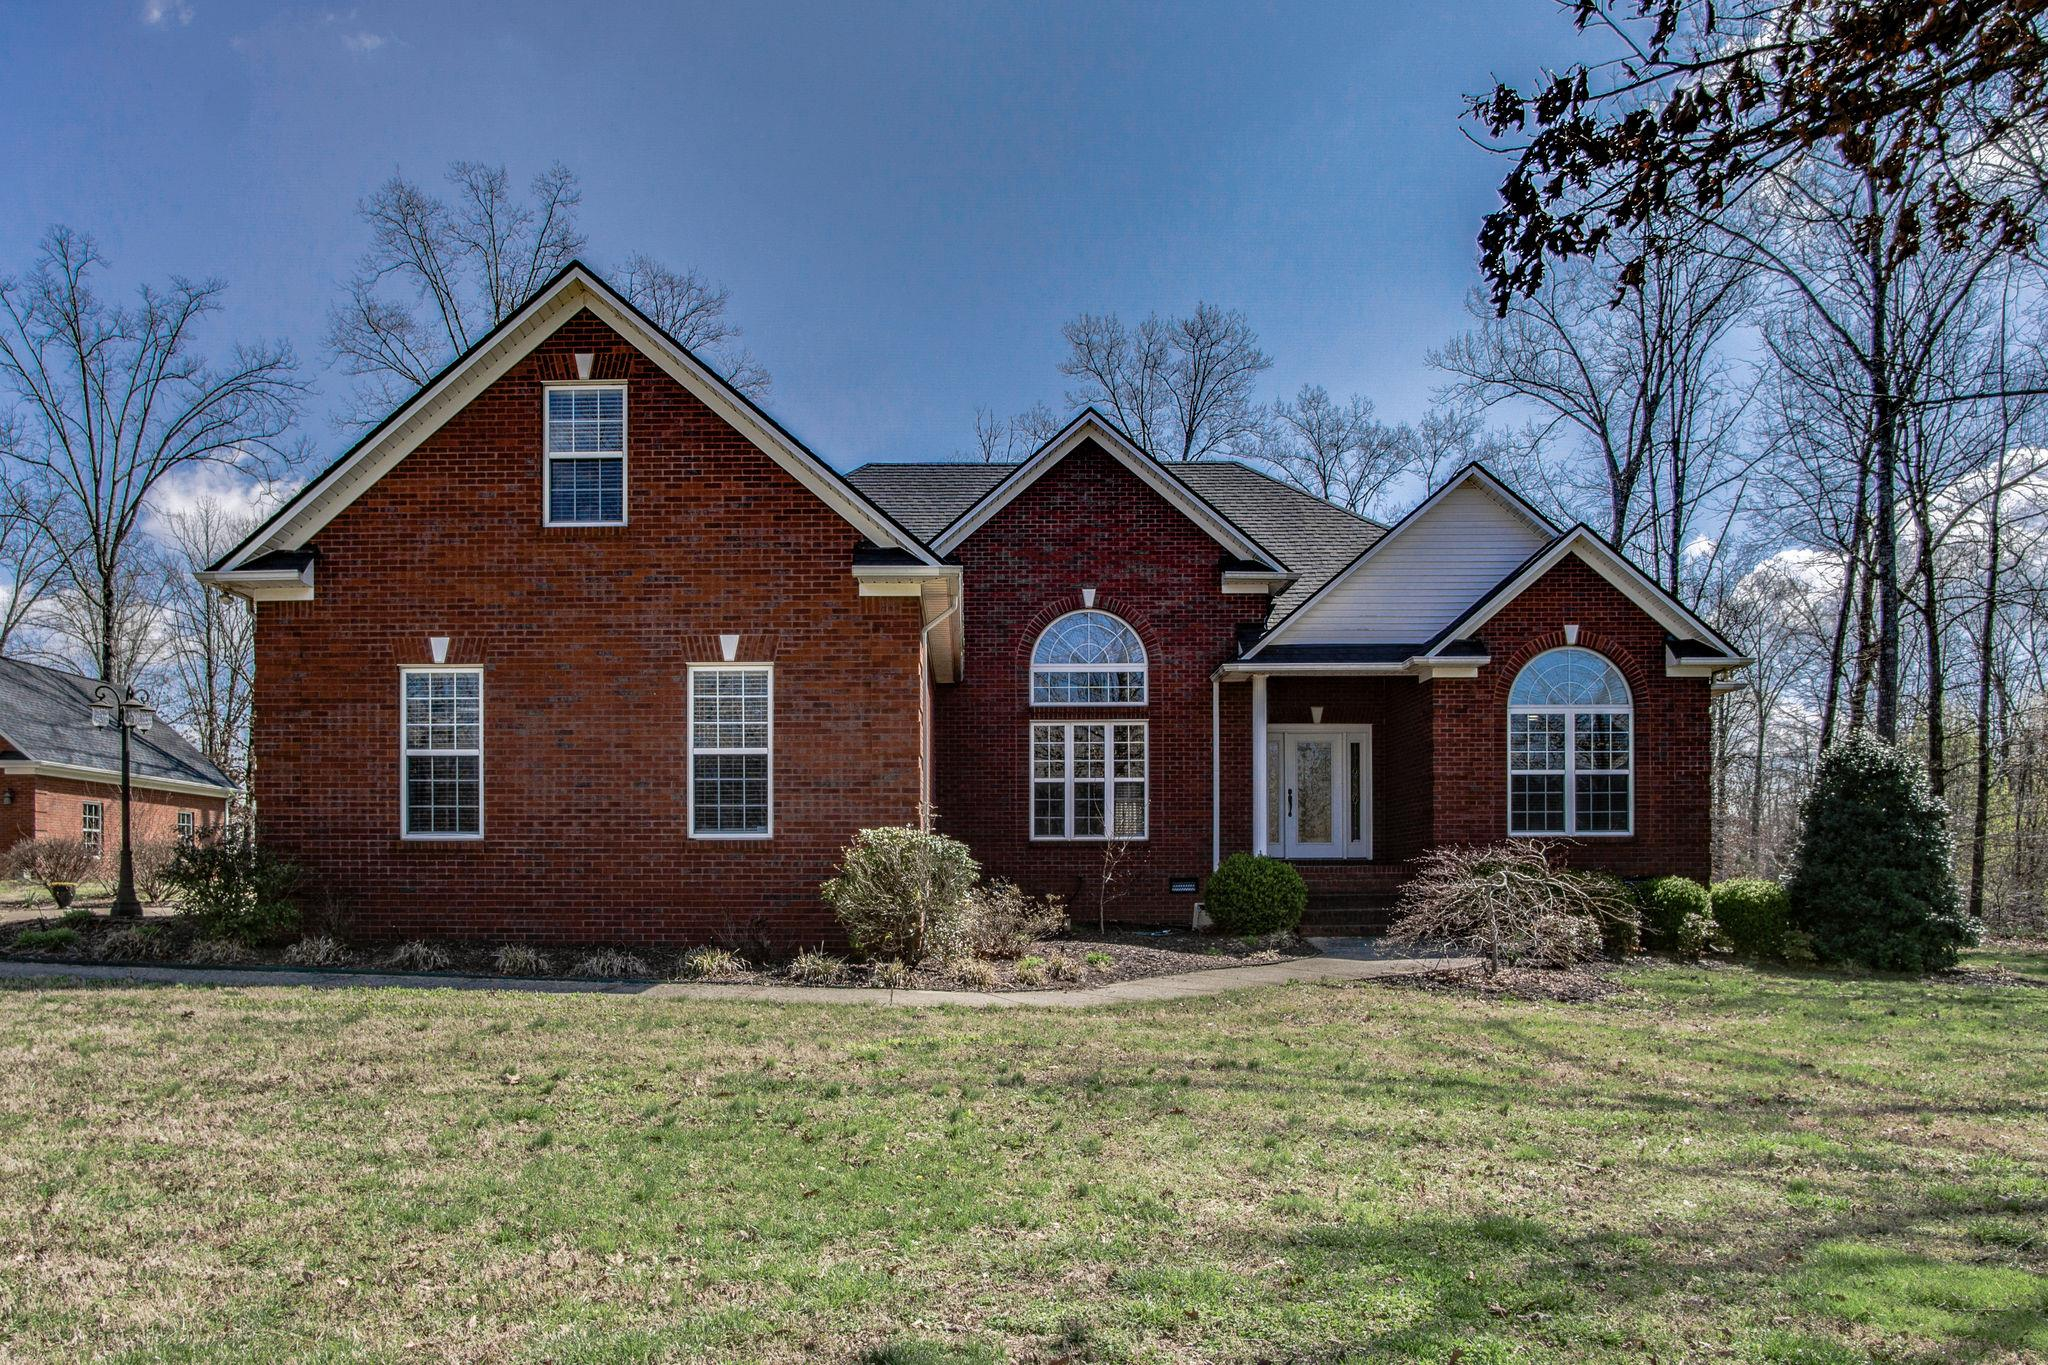 9 Will Ave, Lawrenceburg, TN 38464 - Lawrenceburg, TN real estate listing